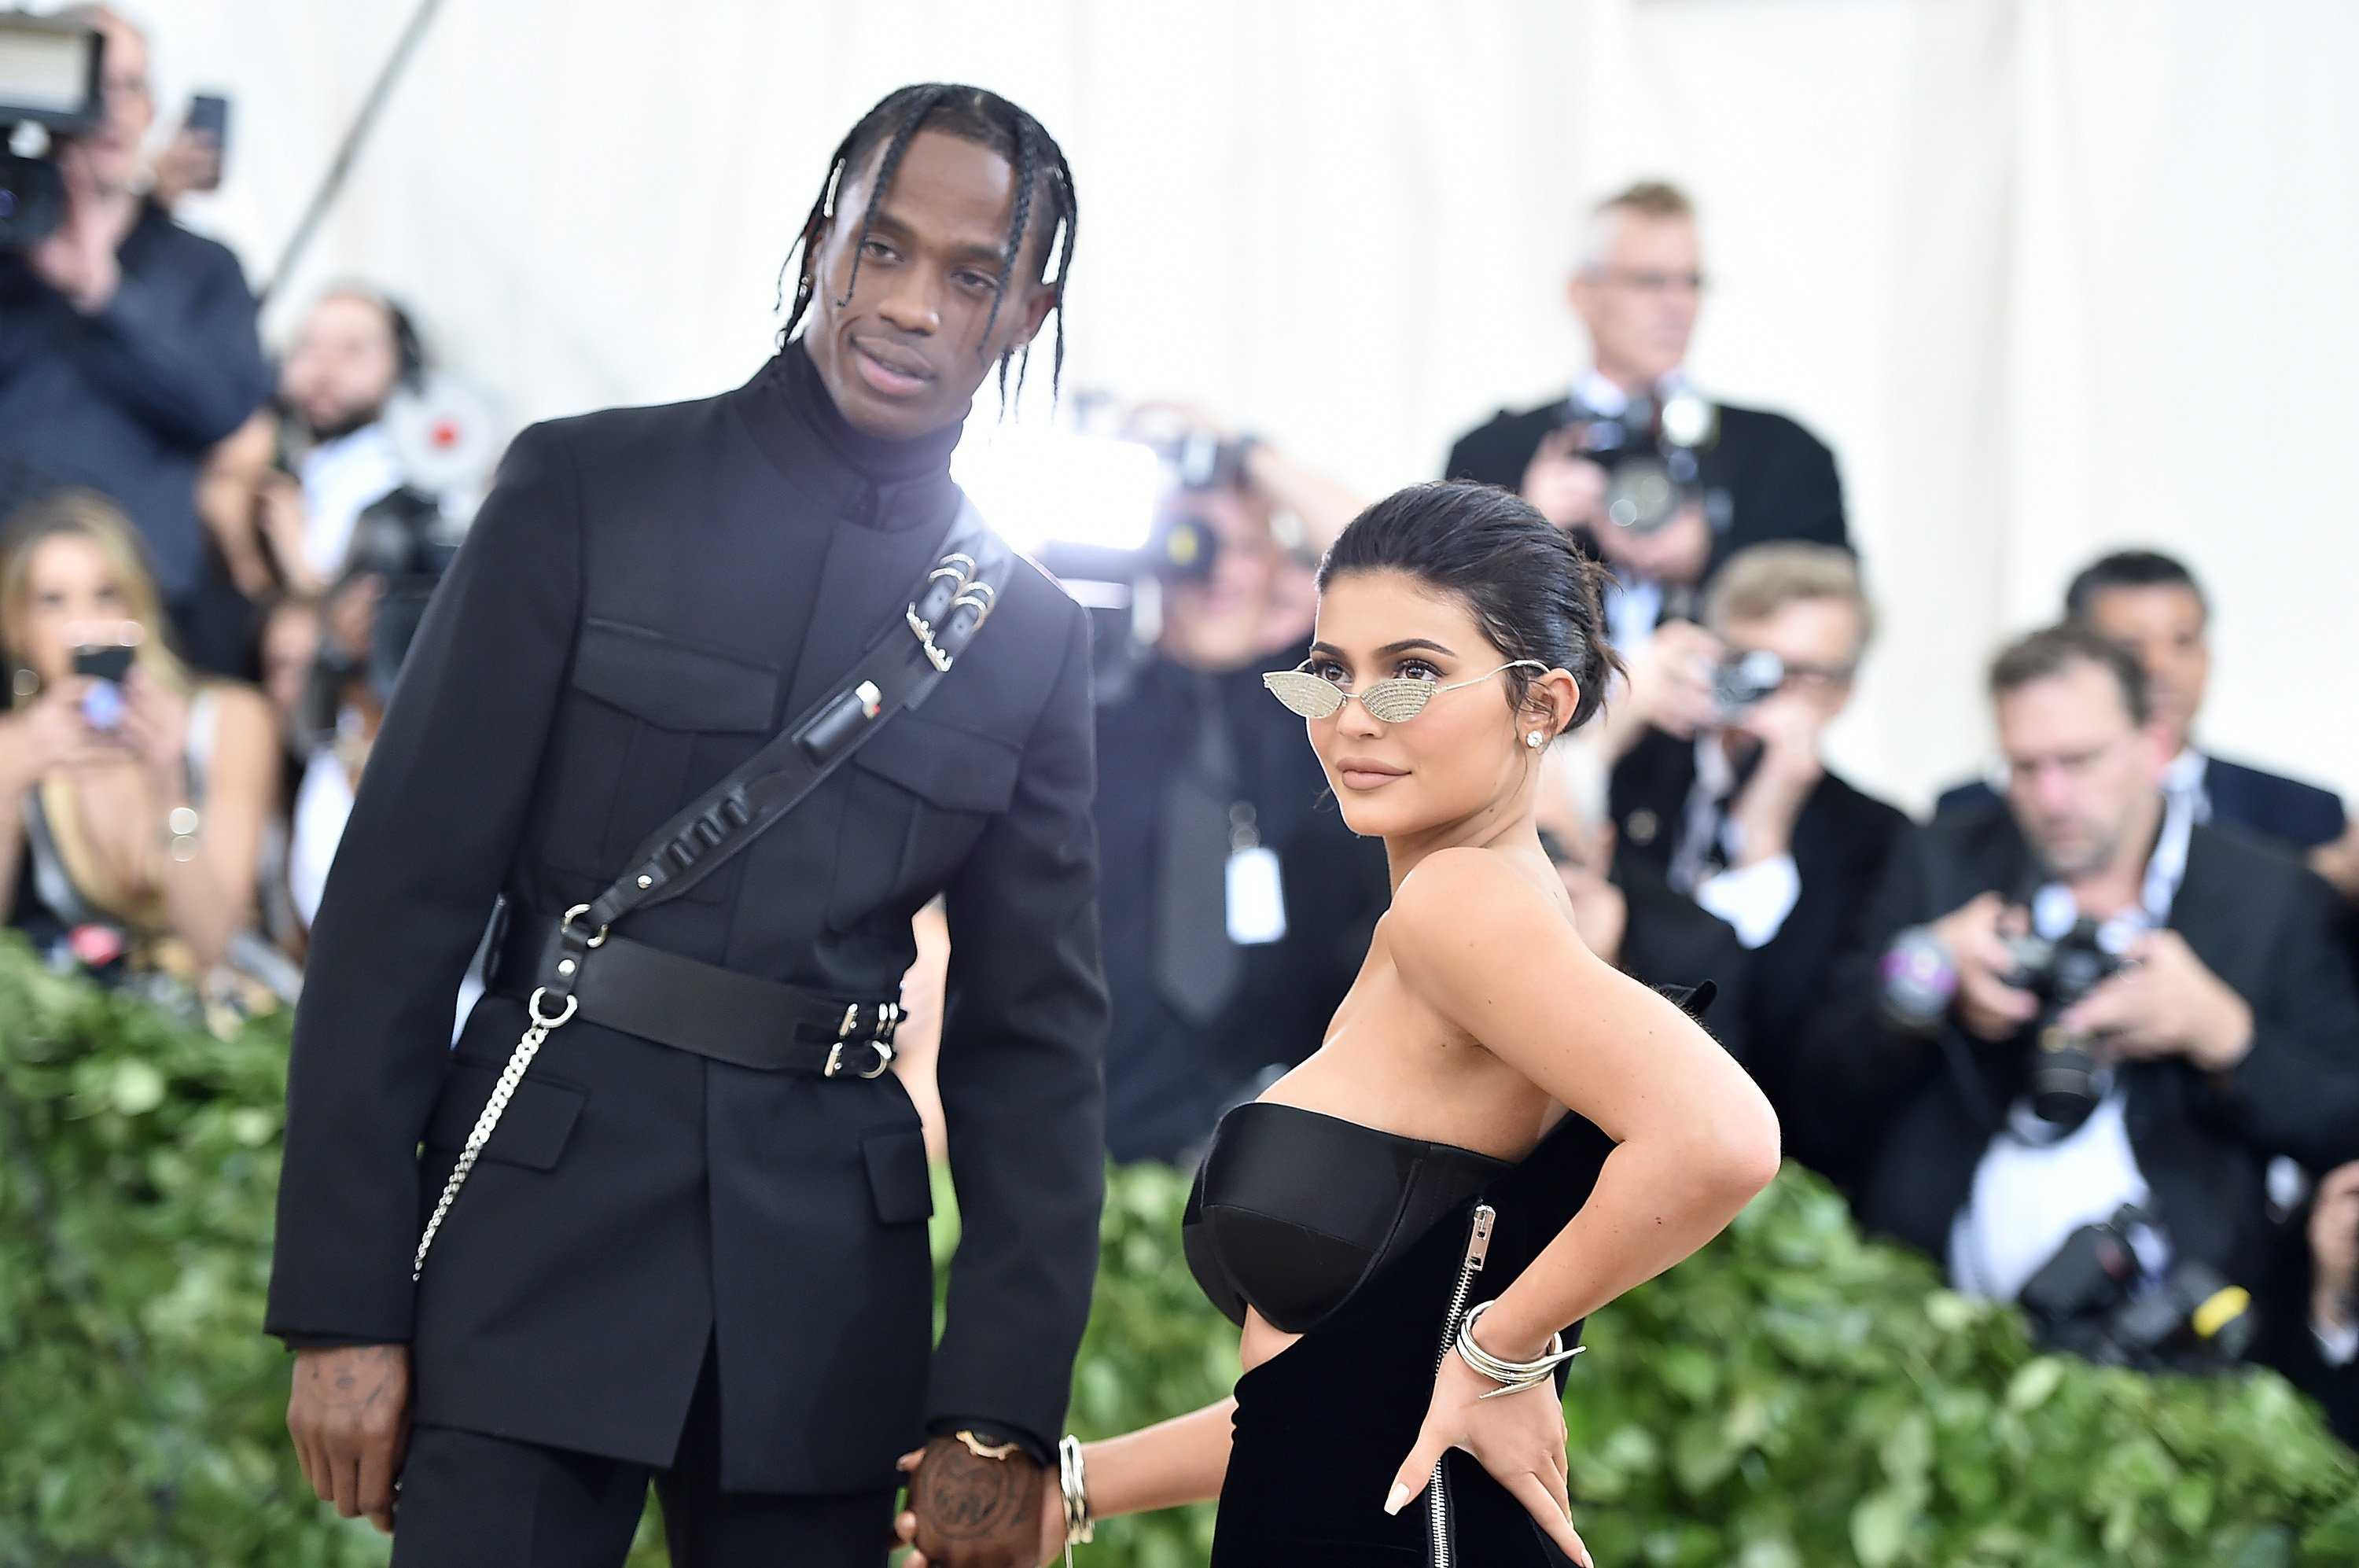 Travis Scott and Kylie Jenner at the Met Gala on May 7, 2018 in New York City | Photo: Getty Images